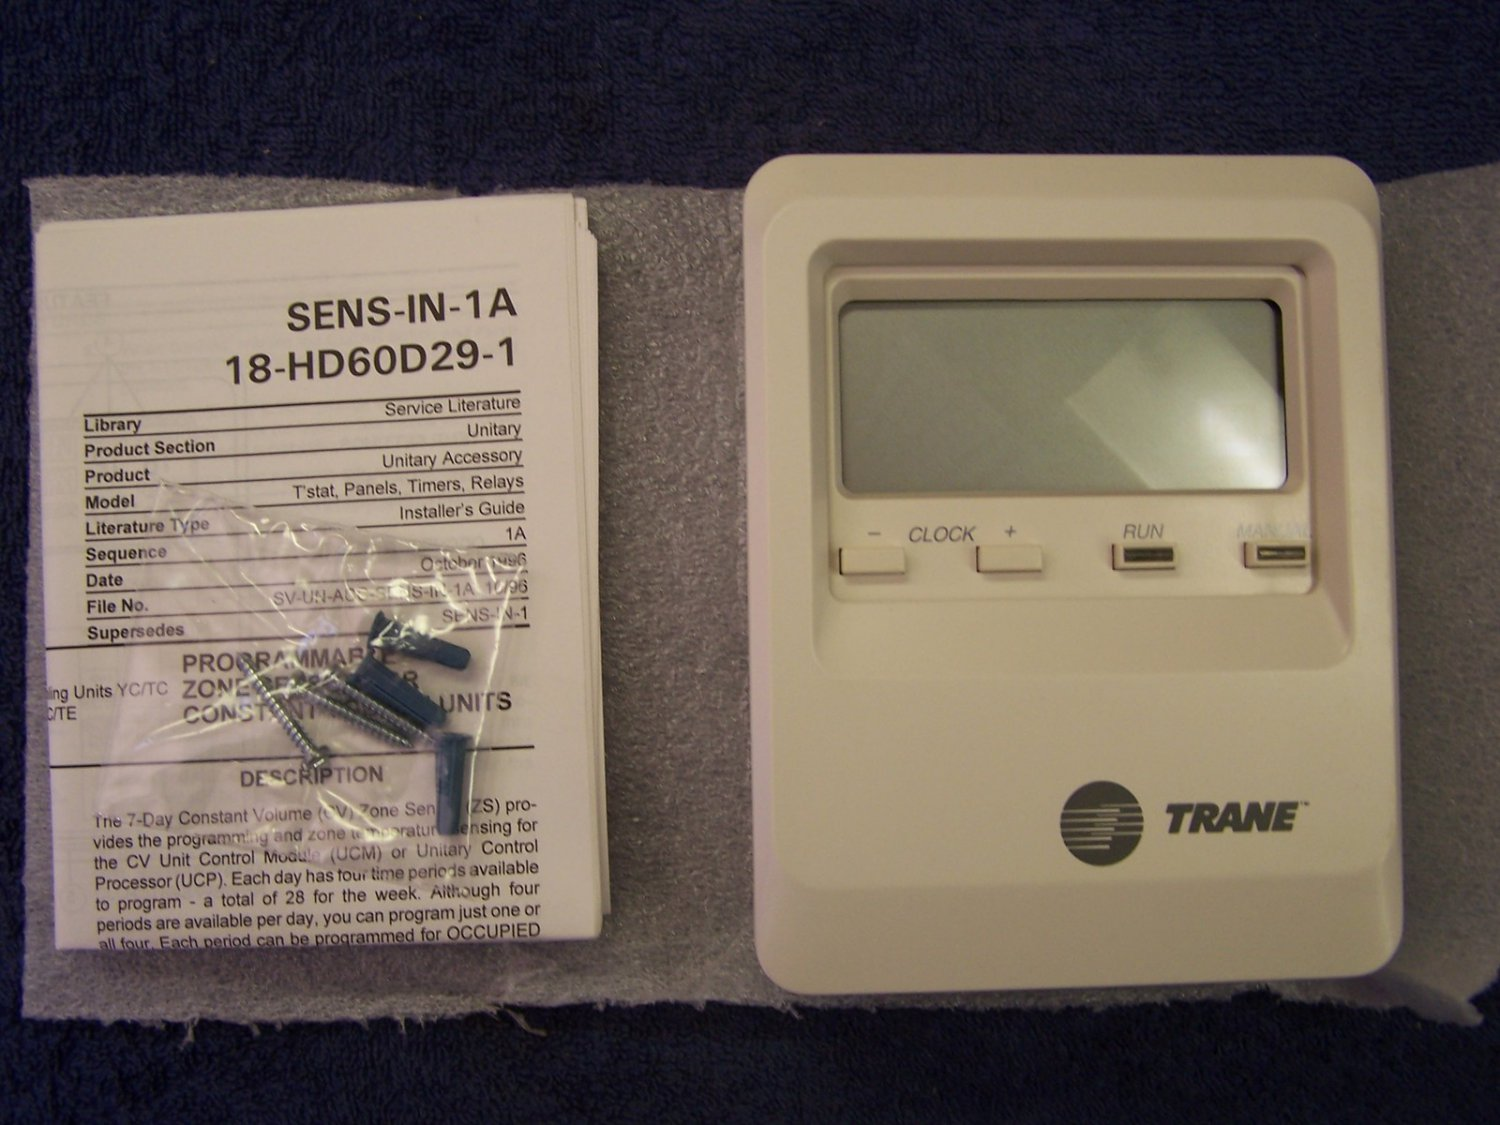 Thermostat Wiring Diagram On Trane Thermostats Wiring Diagram Get